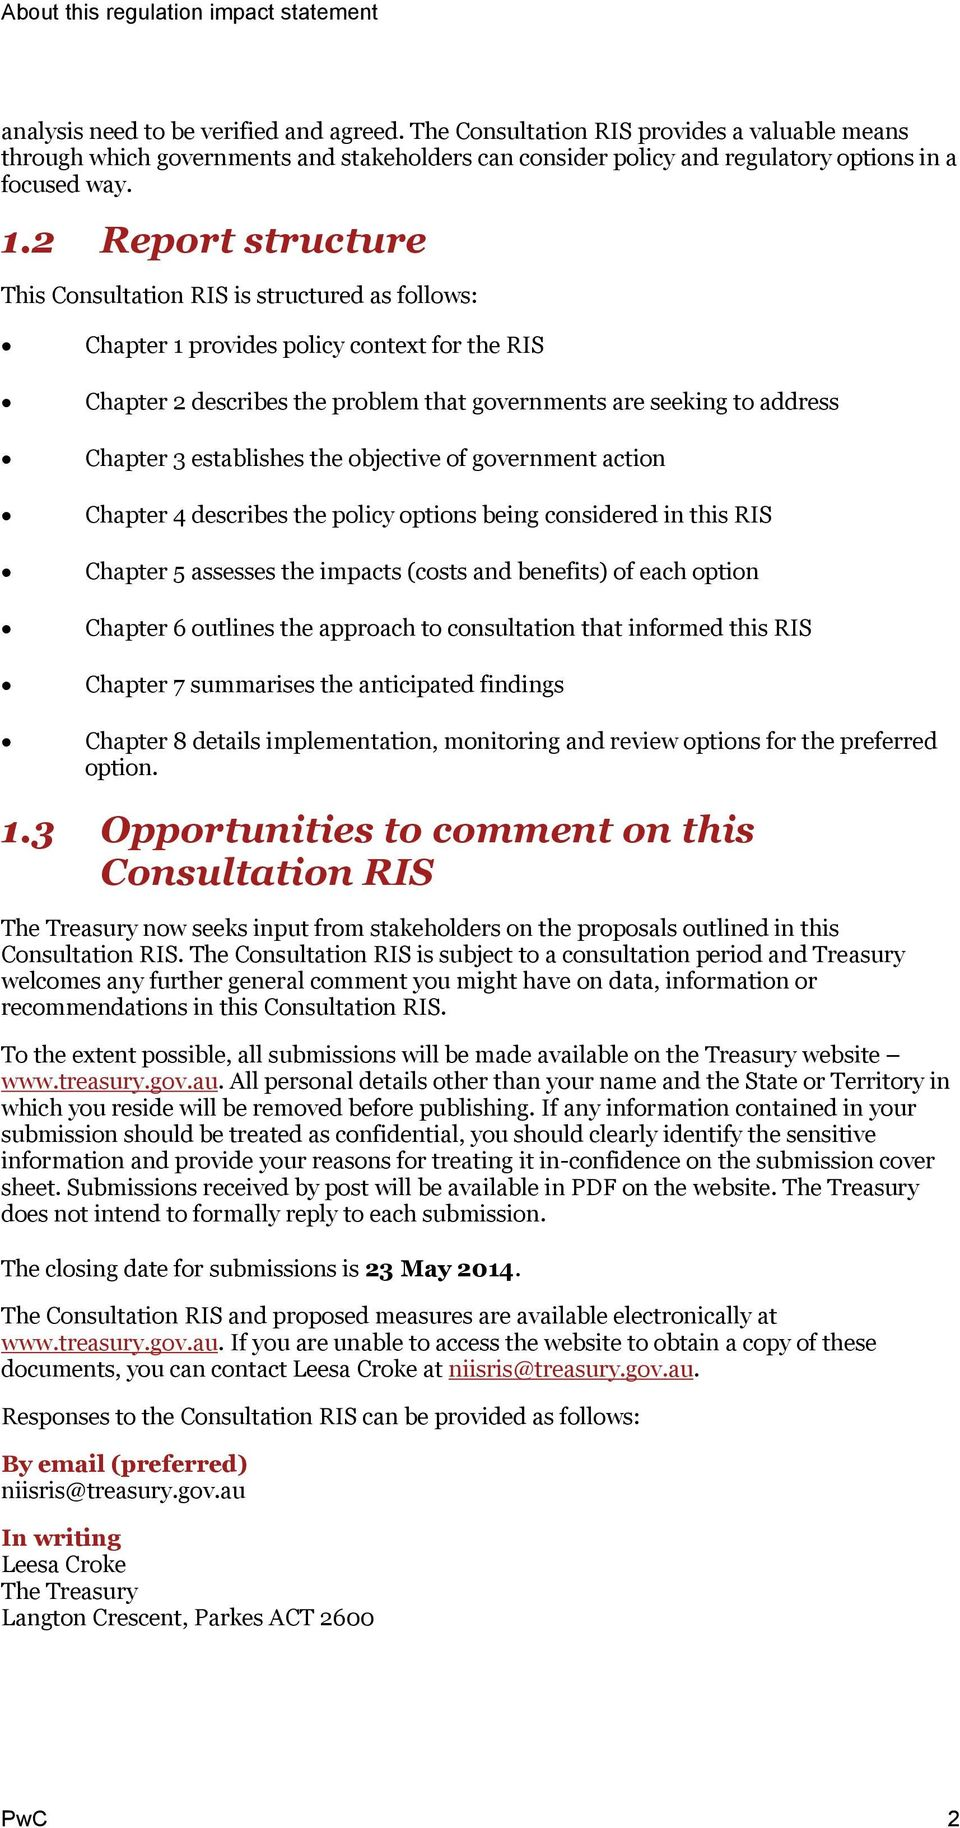 2 Report structure This Consultation RIS is structured as follows: Chapter 1 provides policy context for the RIS Chapter 2 describes the problem that governments are seeking to address Chapter 3